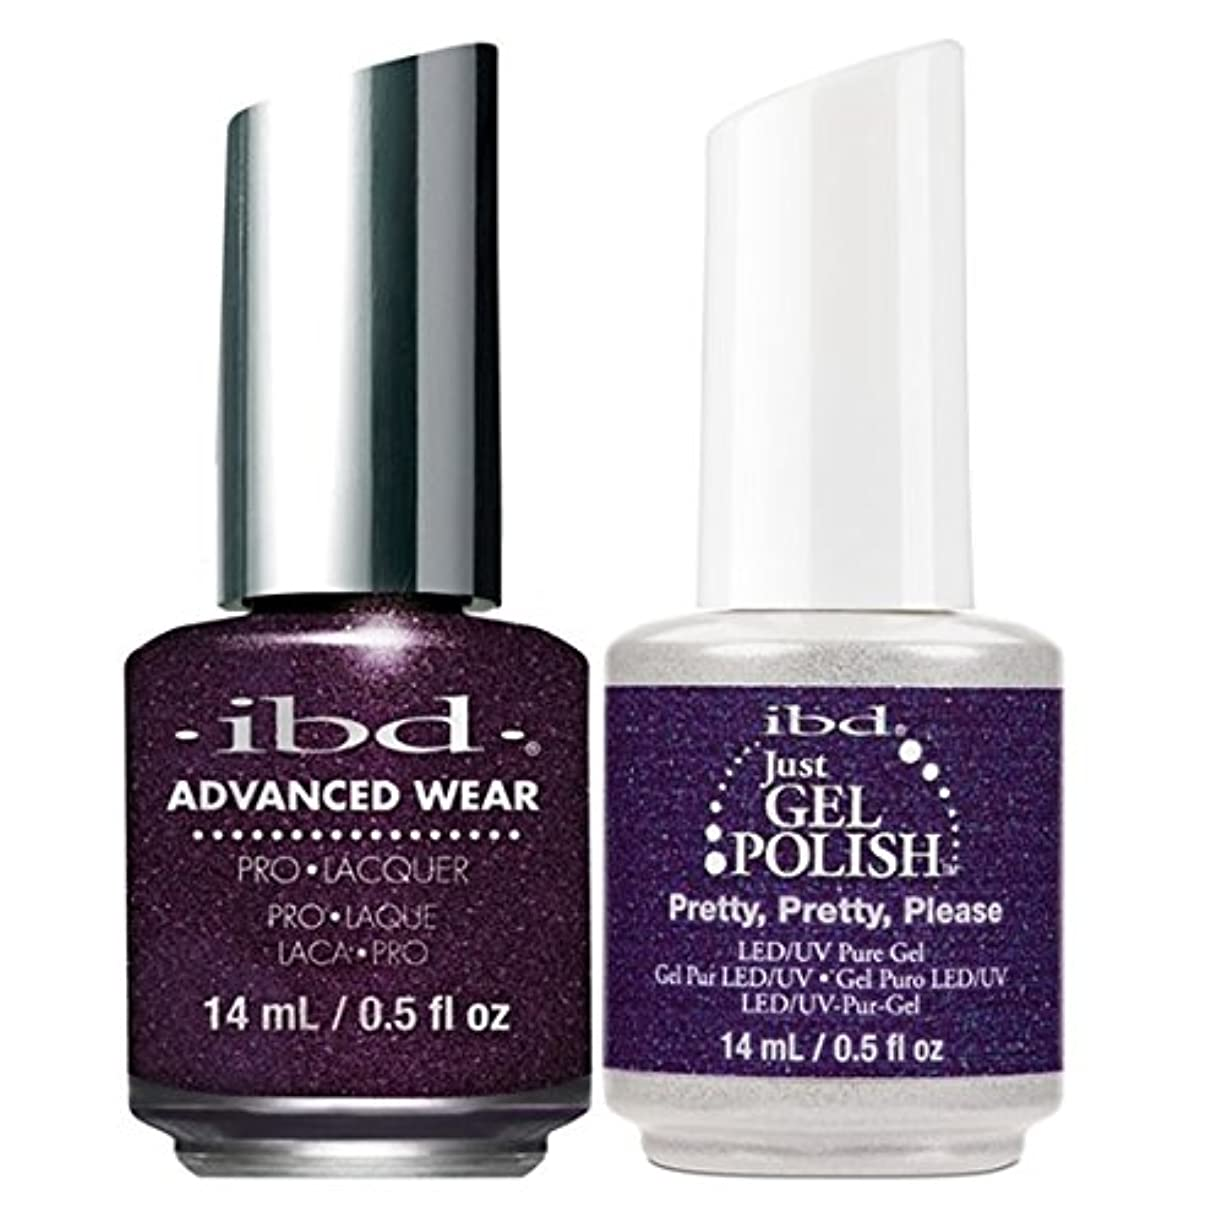 ibd - It's A Match -Duo Pack- Imperial Affairs Collection - Pretty, Pretty, Please - 14 mL / 0.5 oz Each